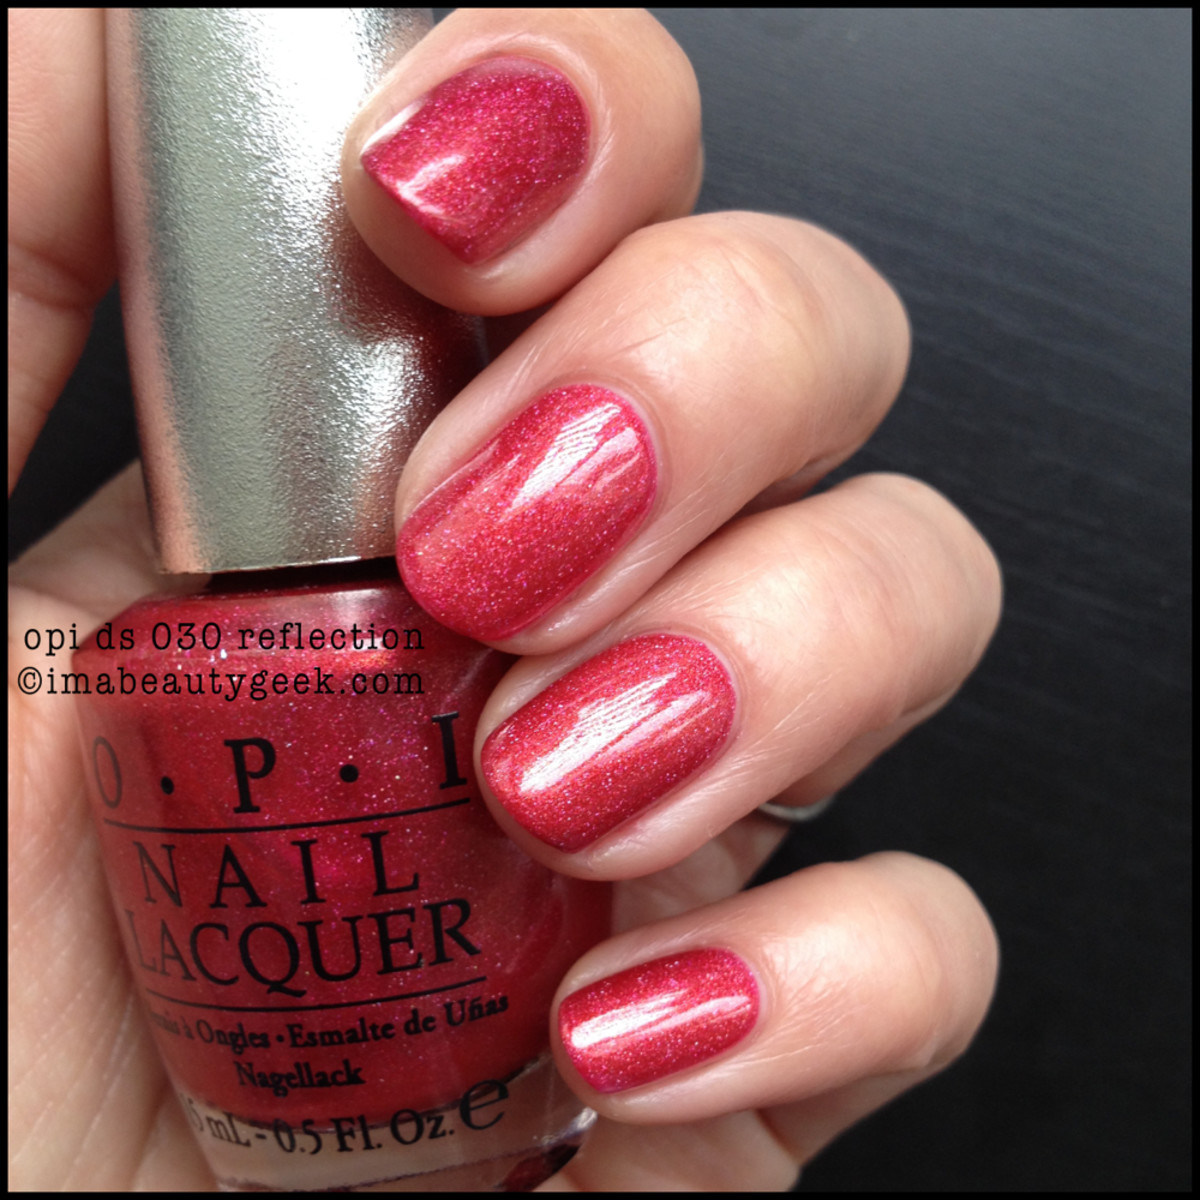 OPI DS Reflection 030